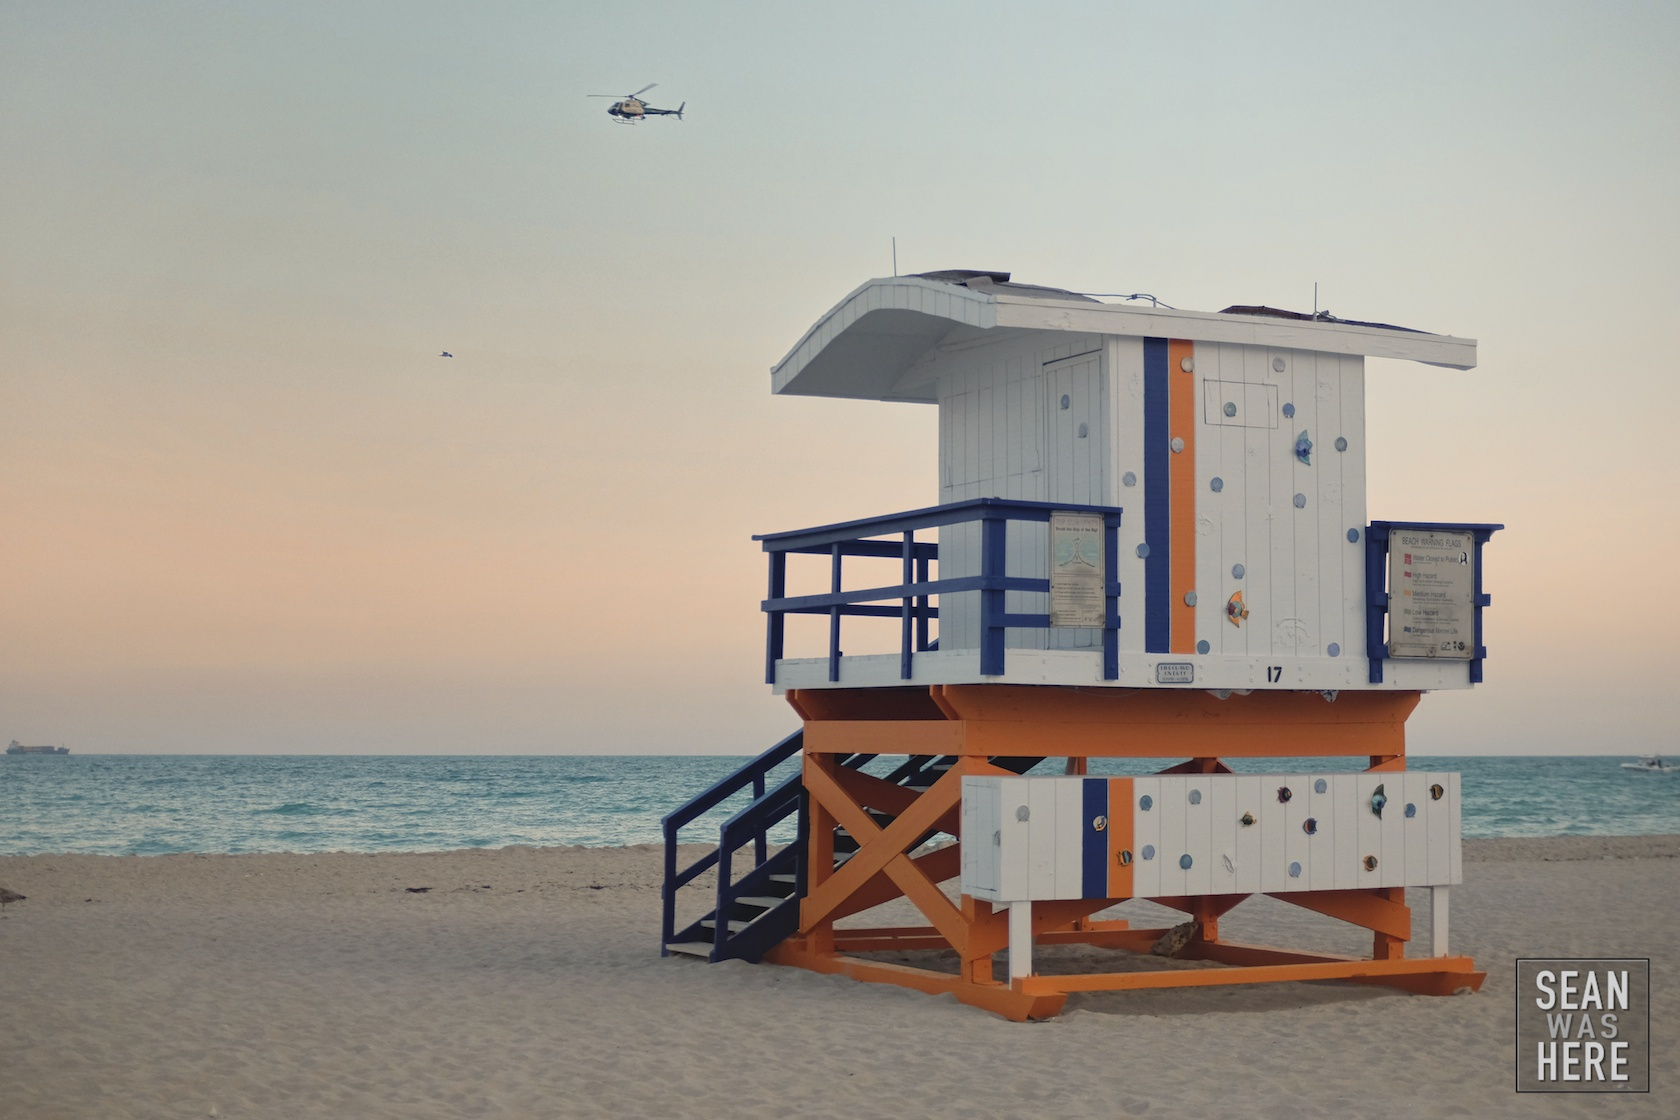 Miami Beach 17th Street Lifeguard Stand (Old)